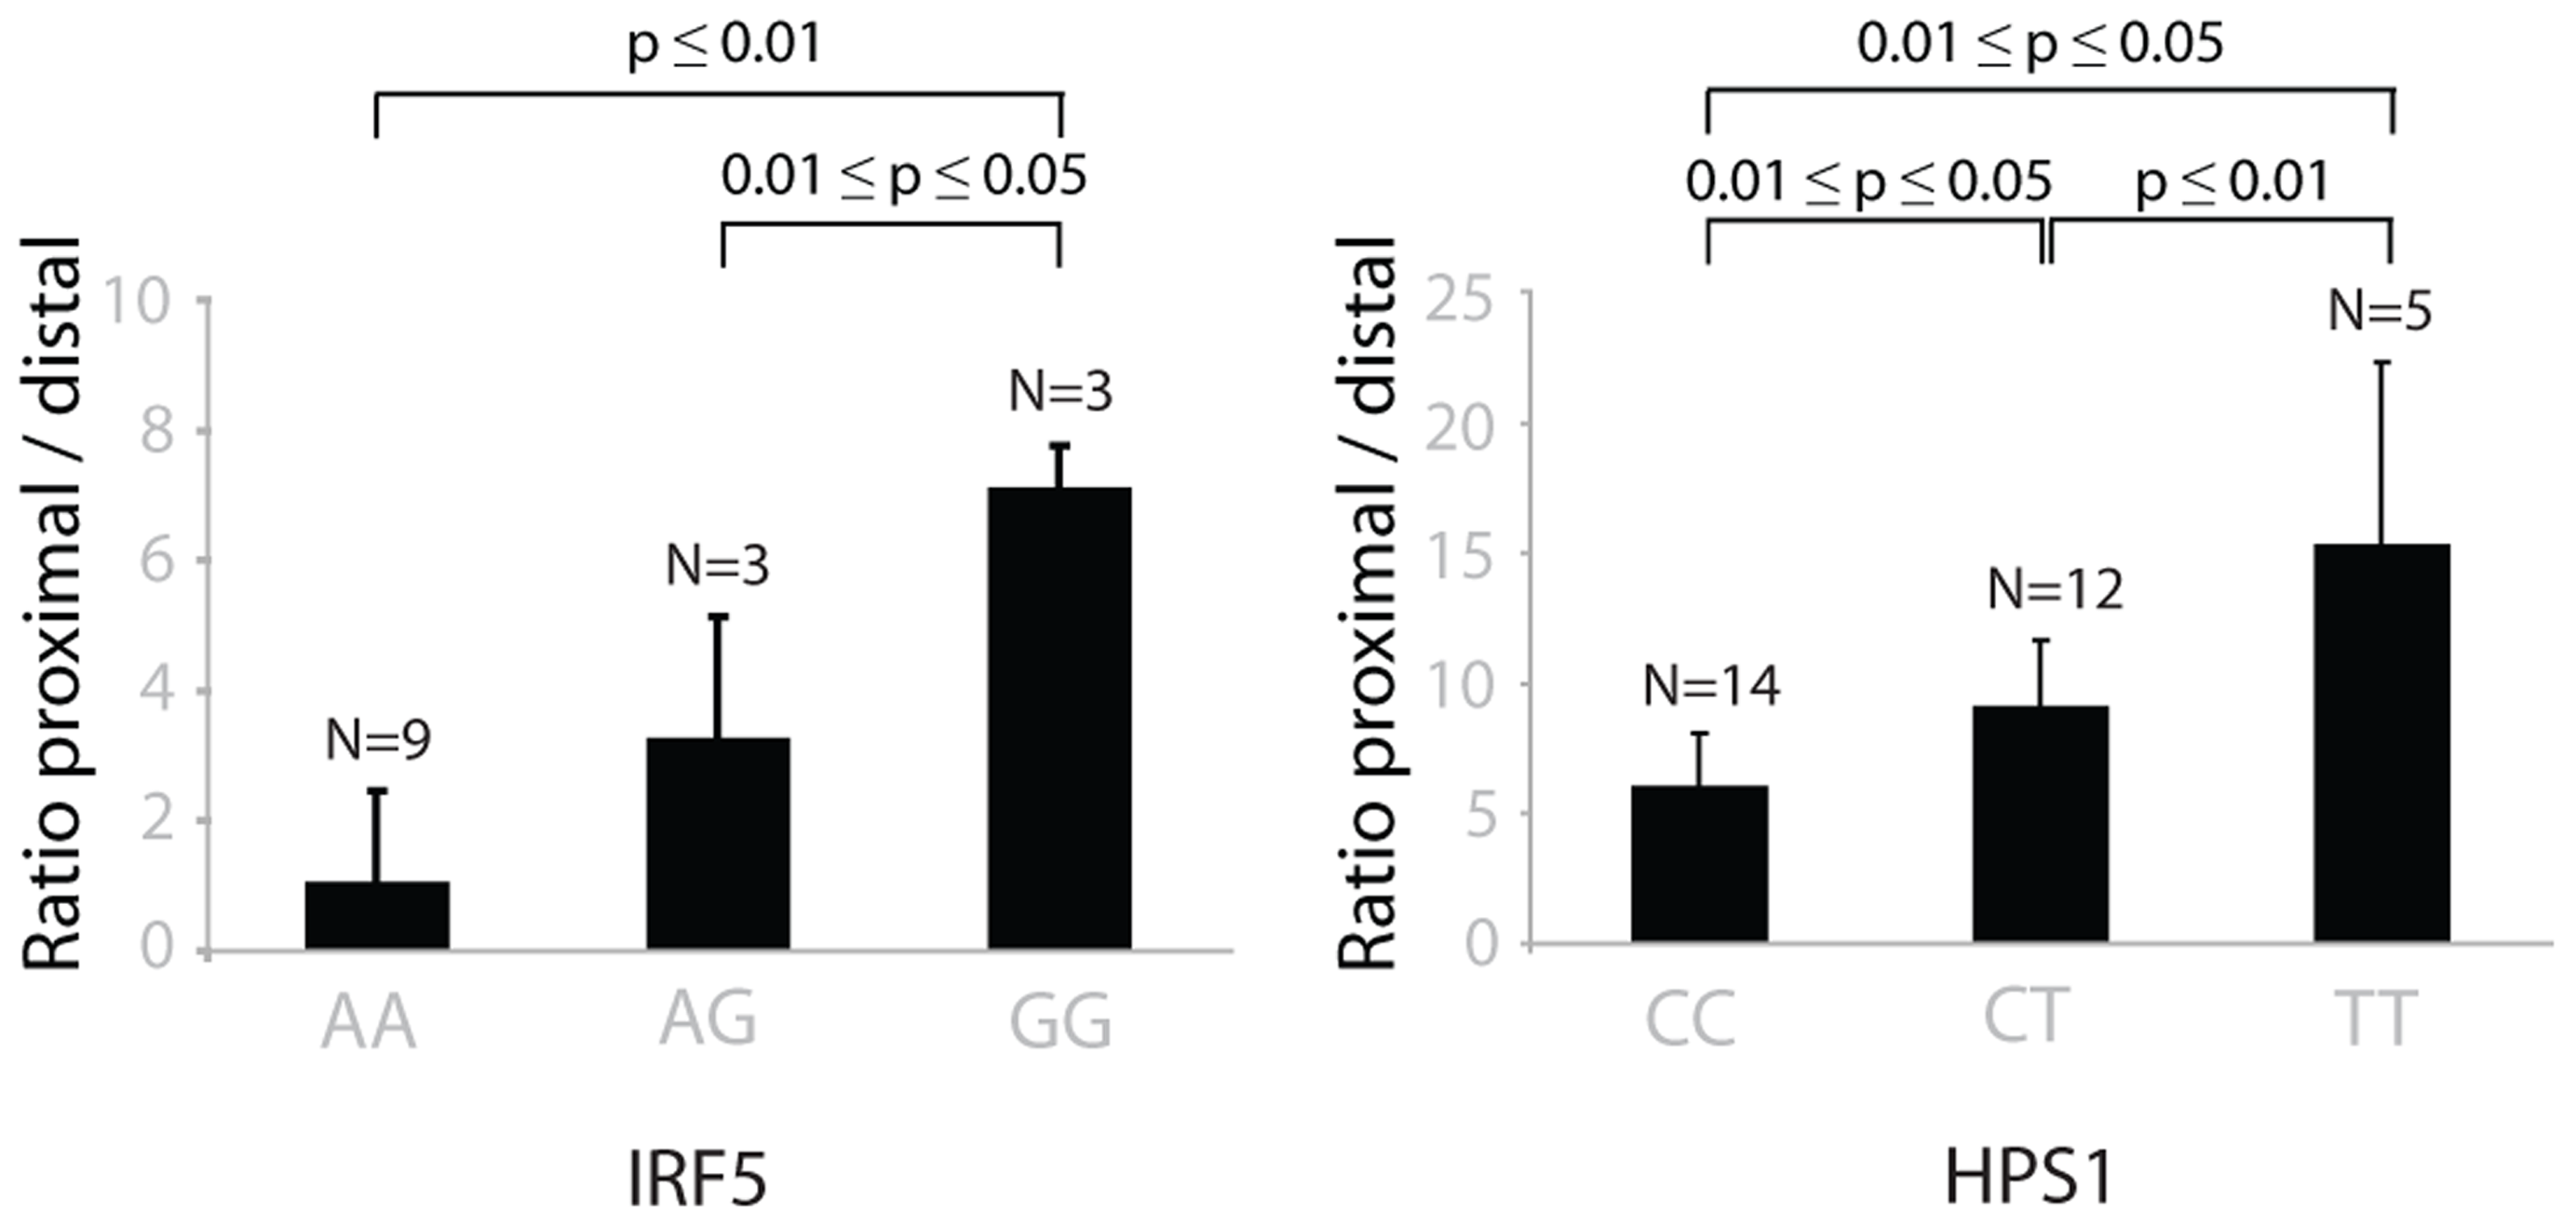 The choice of proximal/distal polyadenylation site in genes <i>IRF5</i> and <i>HPS1</i> depends on the genotypes of rs10488630 and rs11189600, respectively.